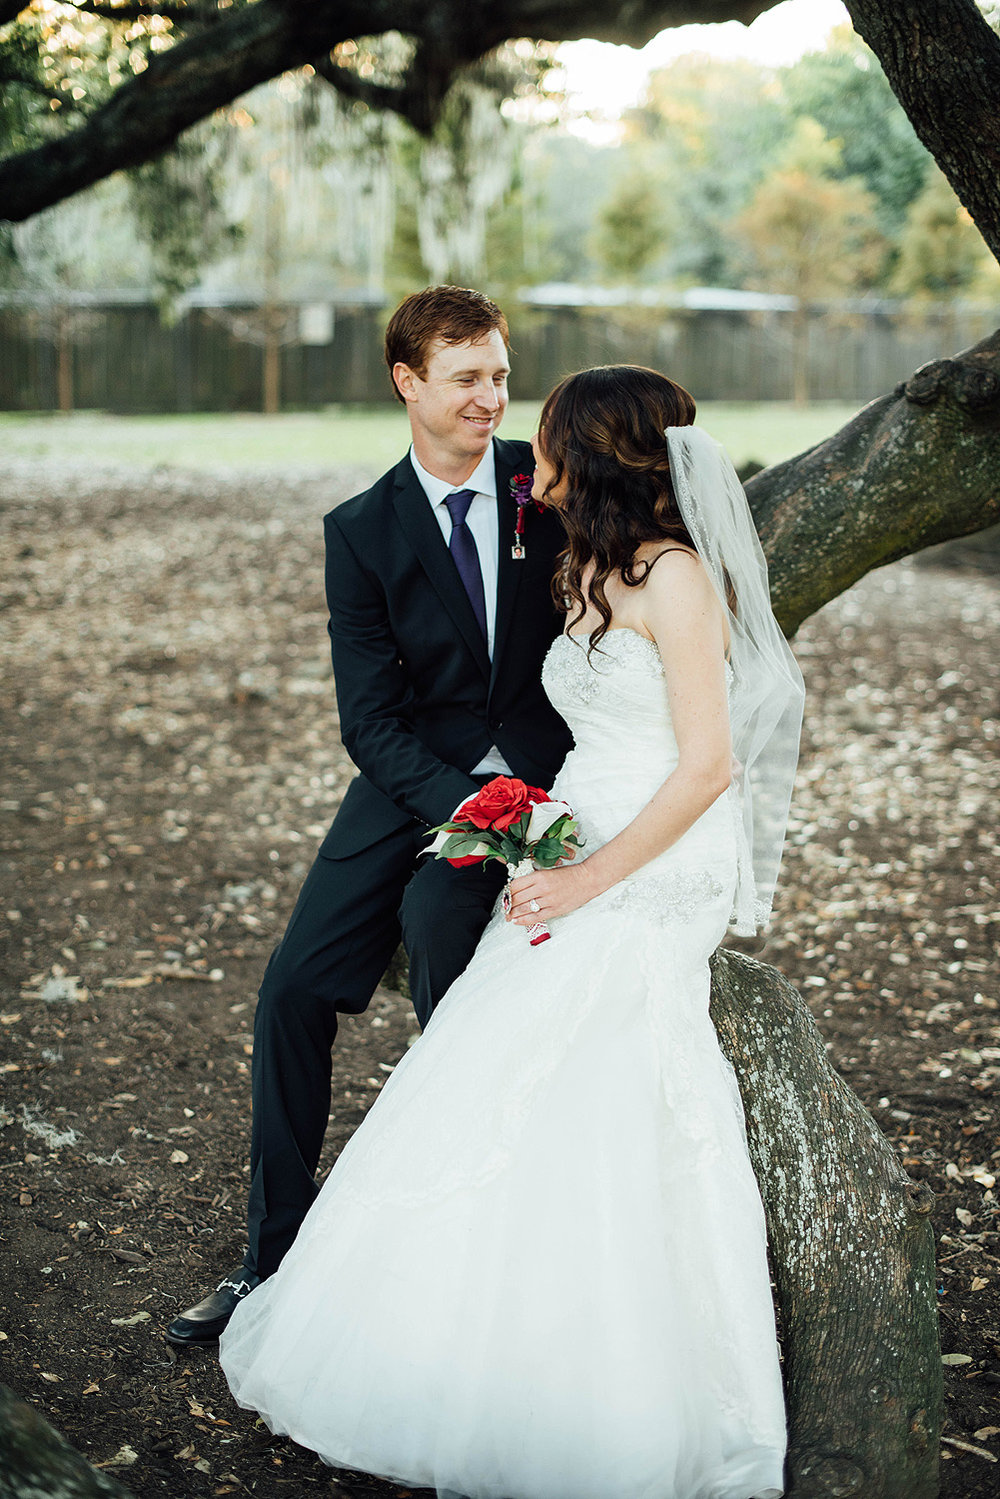 Lisa + Rock-Tree-of-Life-Audubon-Park-New-Orleans-Elopement-Photos_Online_0205.jpg